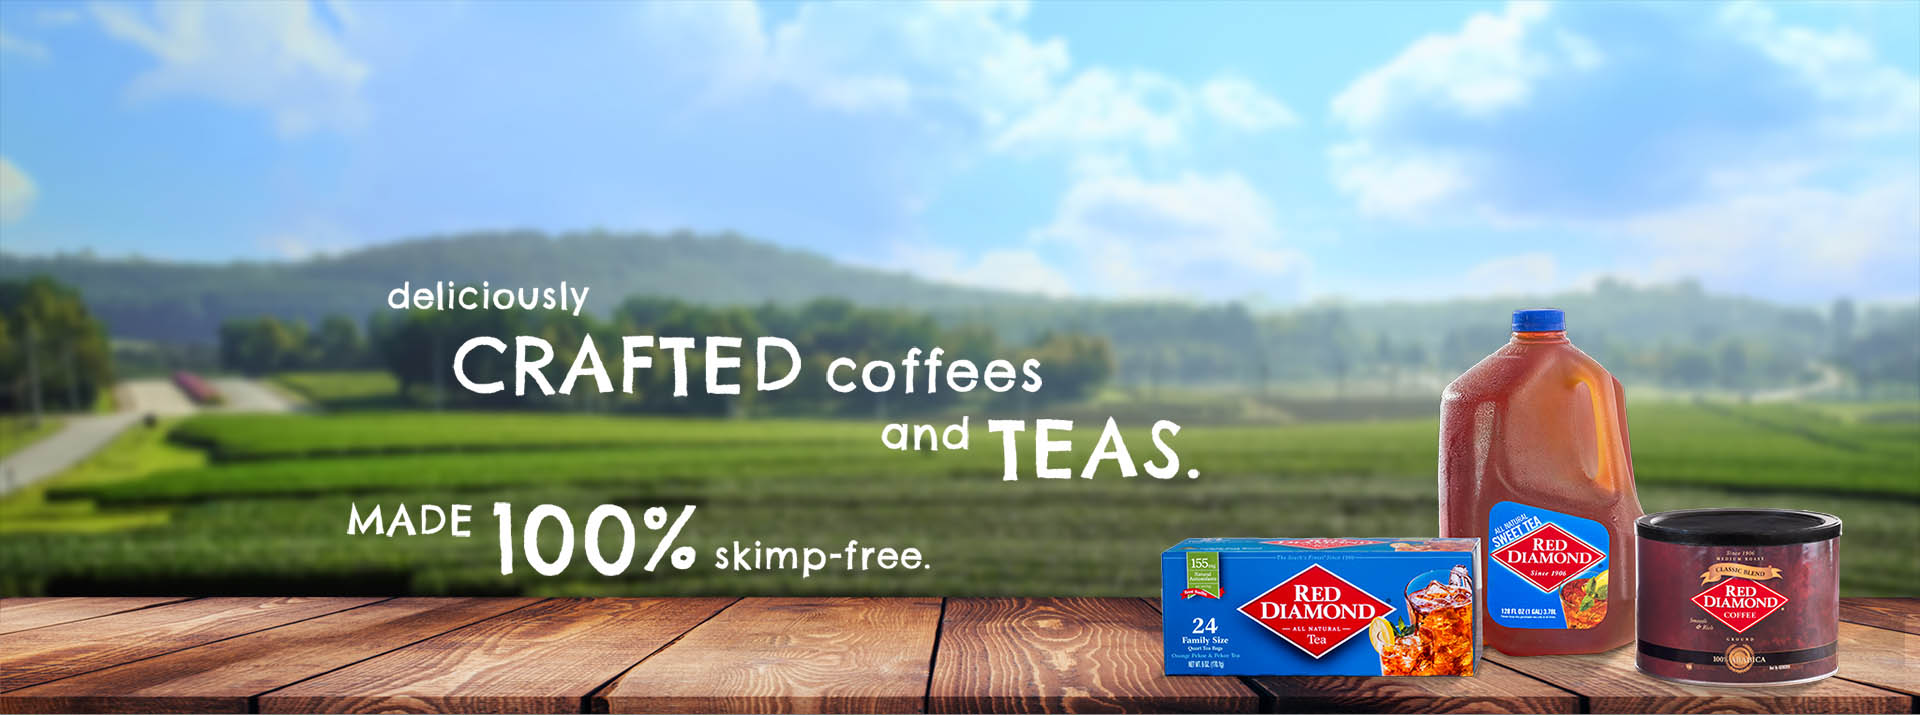 Deliciously crafted coffees and teas